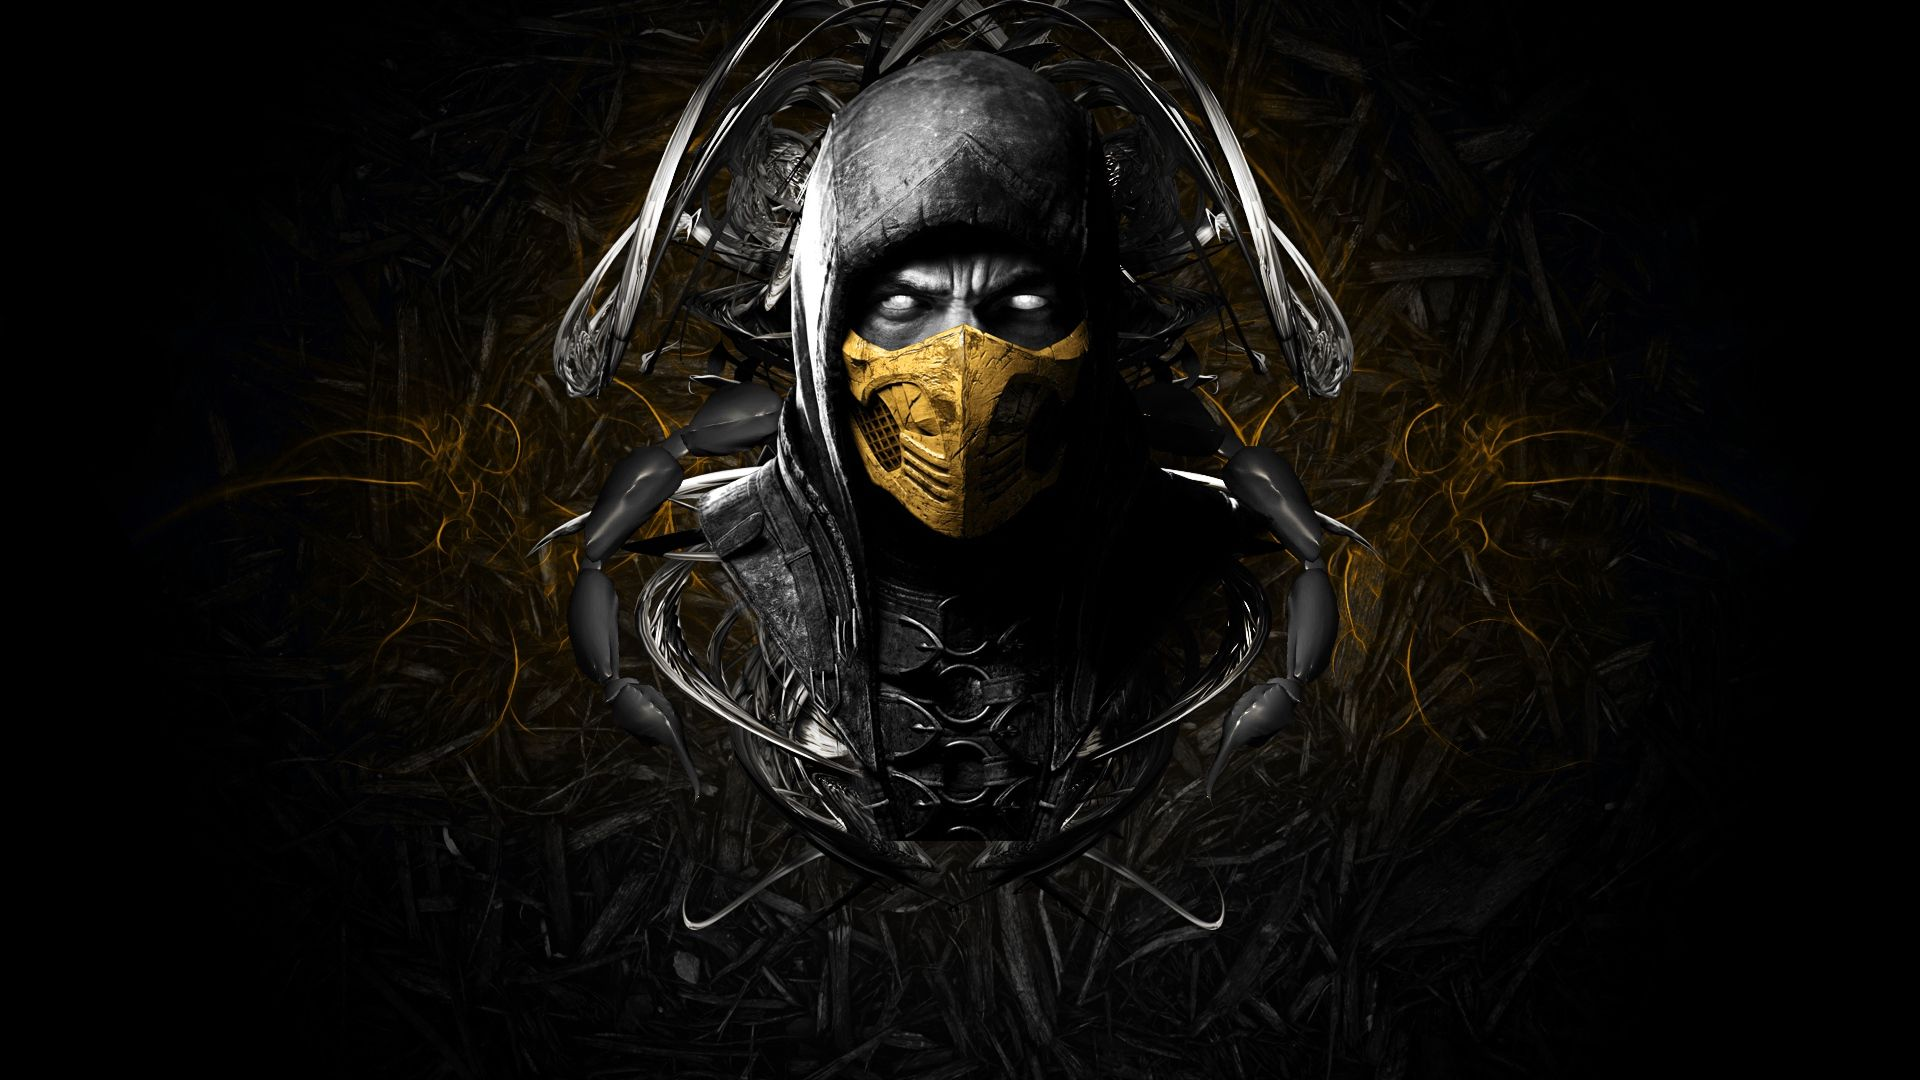 1920x1080 Wallpaper Mortal Kombat X Scorpion Face Ninja Mask